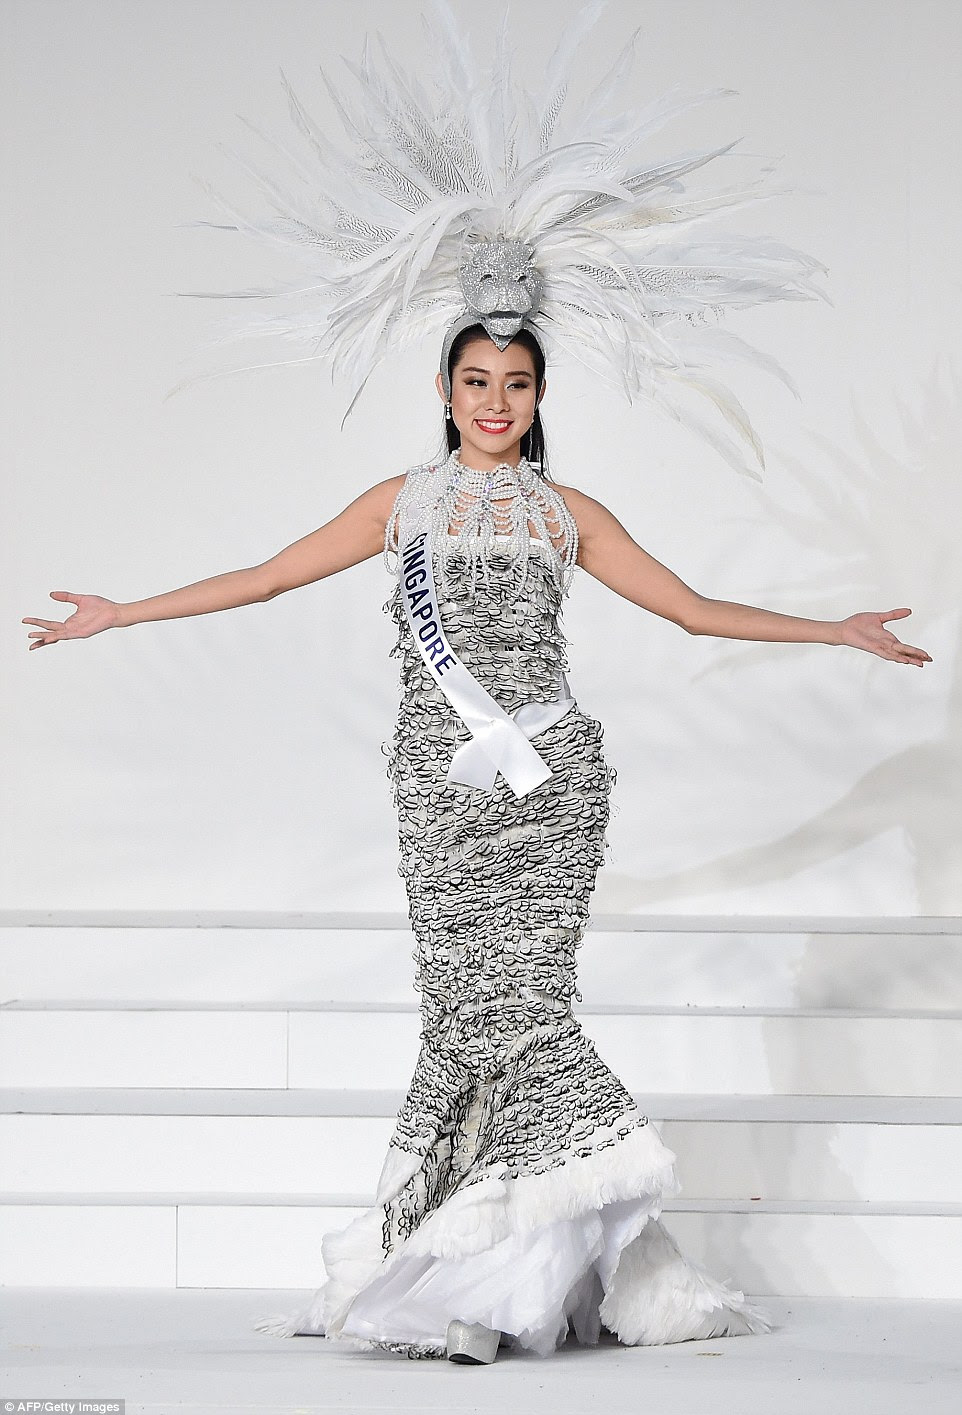 Miss Singapore came dressed as the country's mascot, the half-lion half-fish Merlion. Covered in silver scales, Roxanne Zhang's fish tail breaks into white feathers, which look like a bit like flaked white fish meat, which we guess was the desired effect. Wearing an extravagant pearl necklace, her sparkly lion headdress has a mane of white and black and white striped feathers.